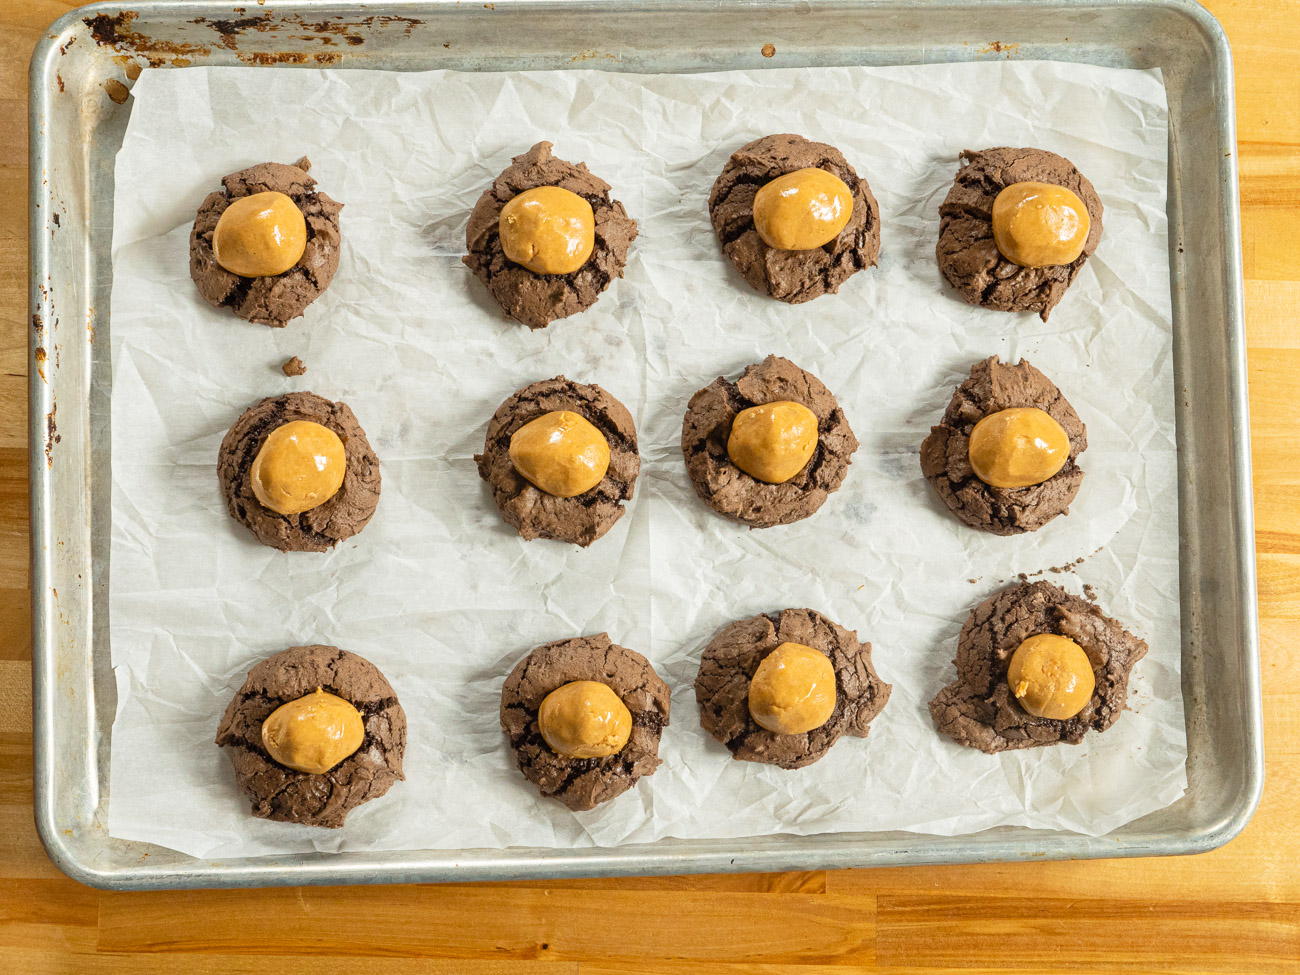 As soon as the cookies come out of the oven, press a peanut butter ball lightly into the center of each cookie. The peanut butter mixture will soften slightly. Cool for about 5 minutes, then transfer to a wire rack.